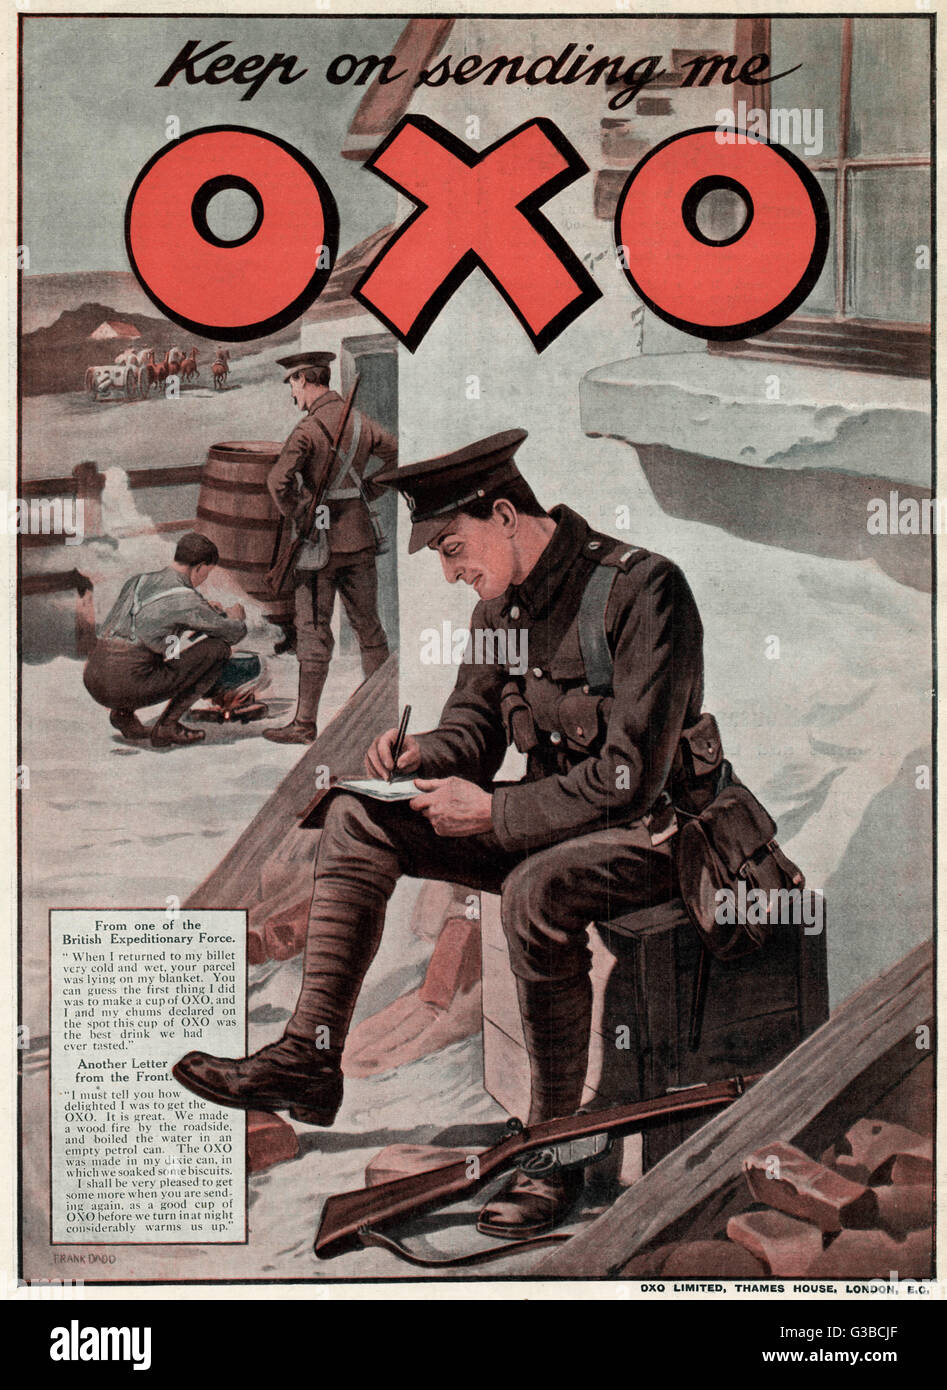 british expedition soldier writing a letter asking to keep on sending me oxo during the first world war soldiers where given oxo cubes in their ration